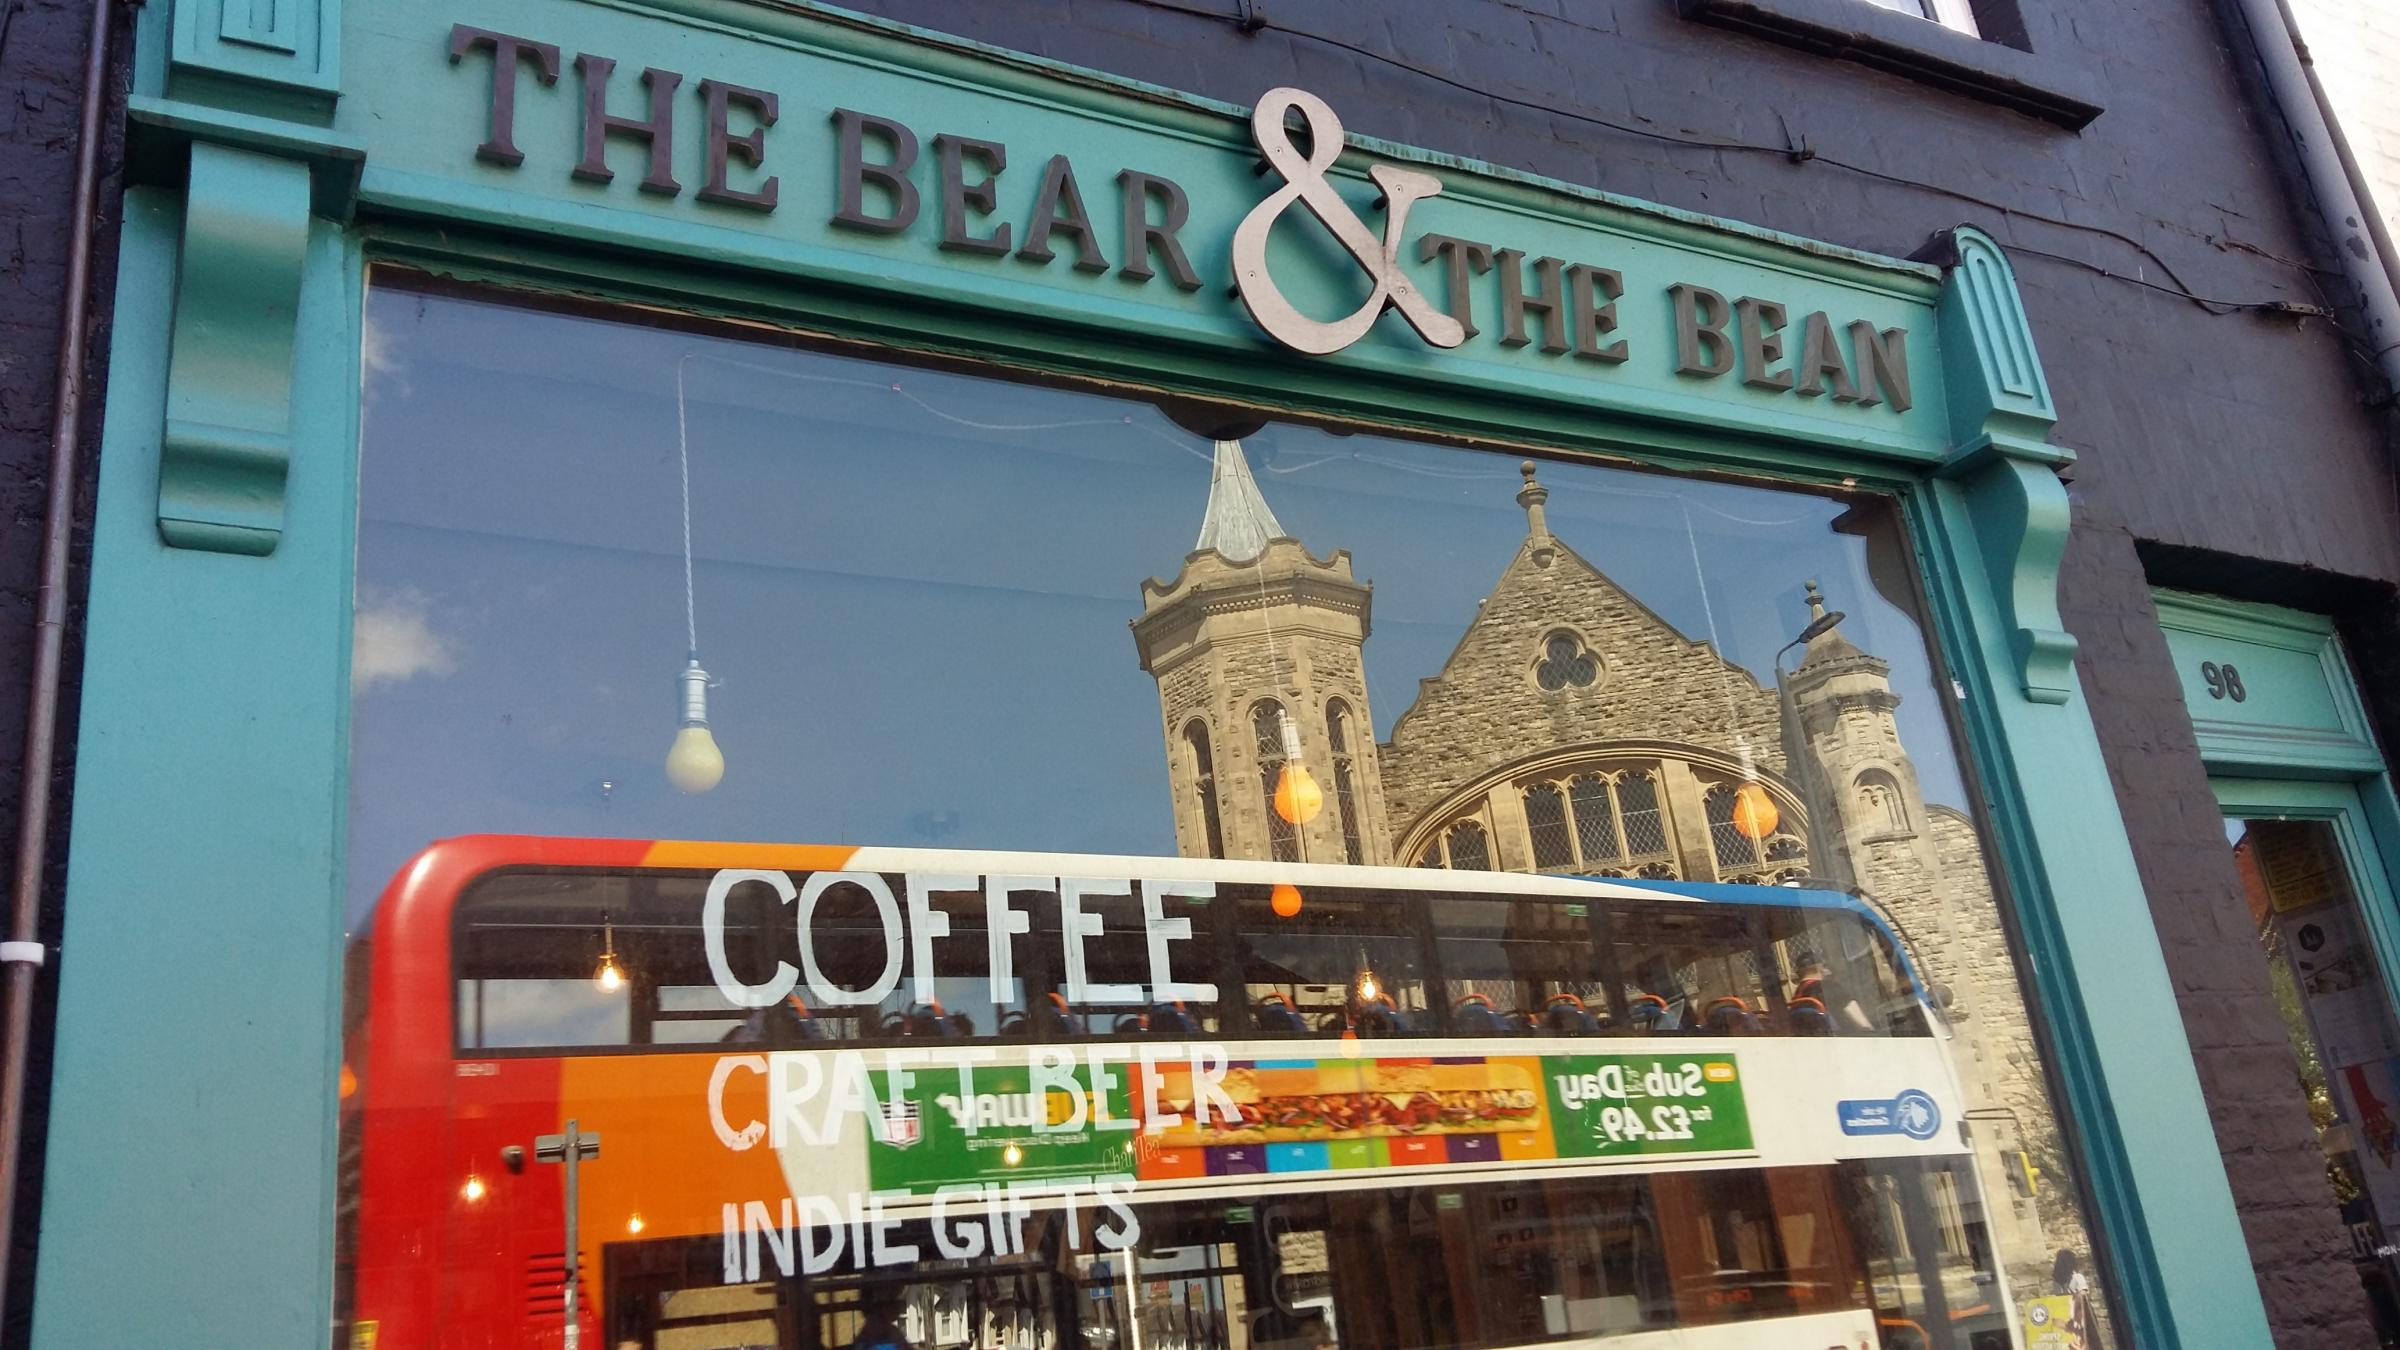 The Bear & The Bean cafe in Cowley Road is to close. Pic Andy Ffrench